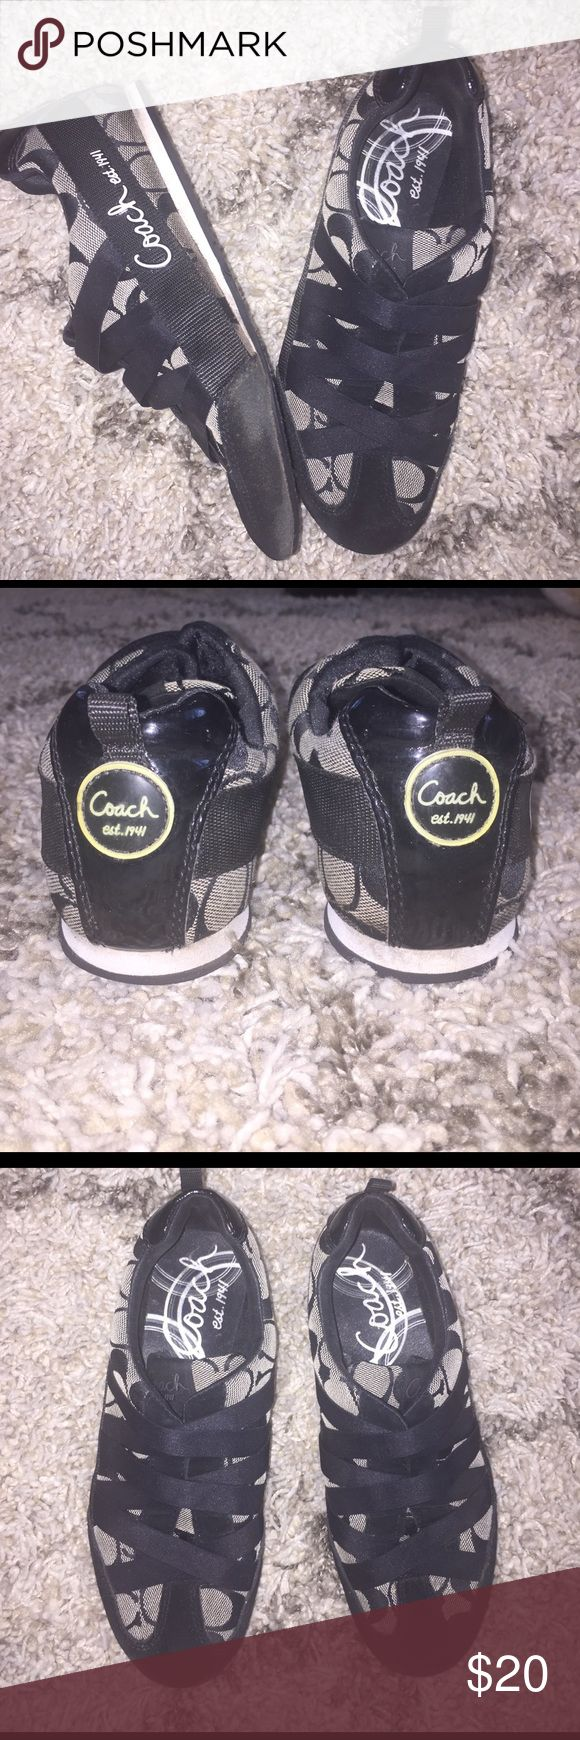 Coach tennis shoes Black Coach tennis shoes size 6.5. Only worn a few times. They are in good condition. Coach Shoes Sneakers